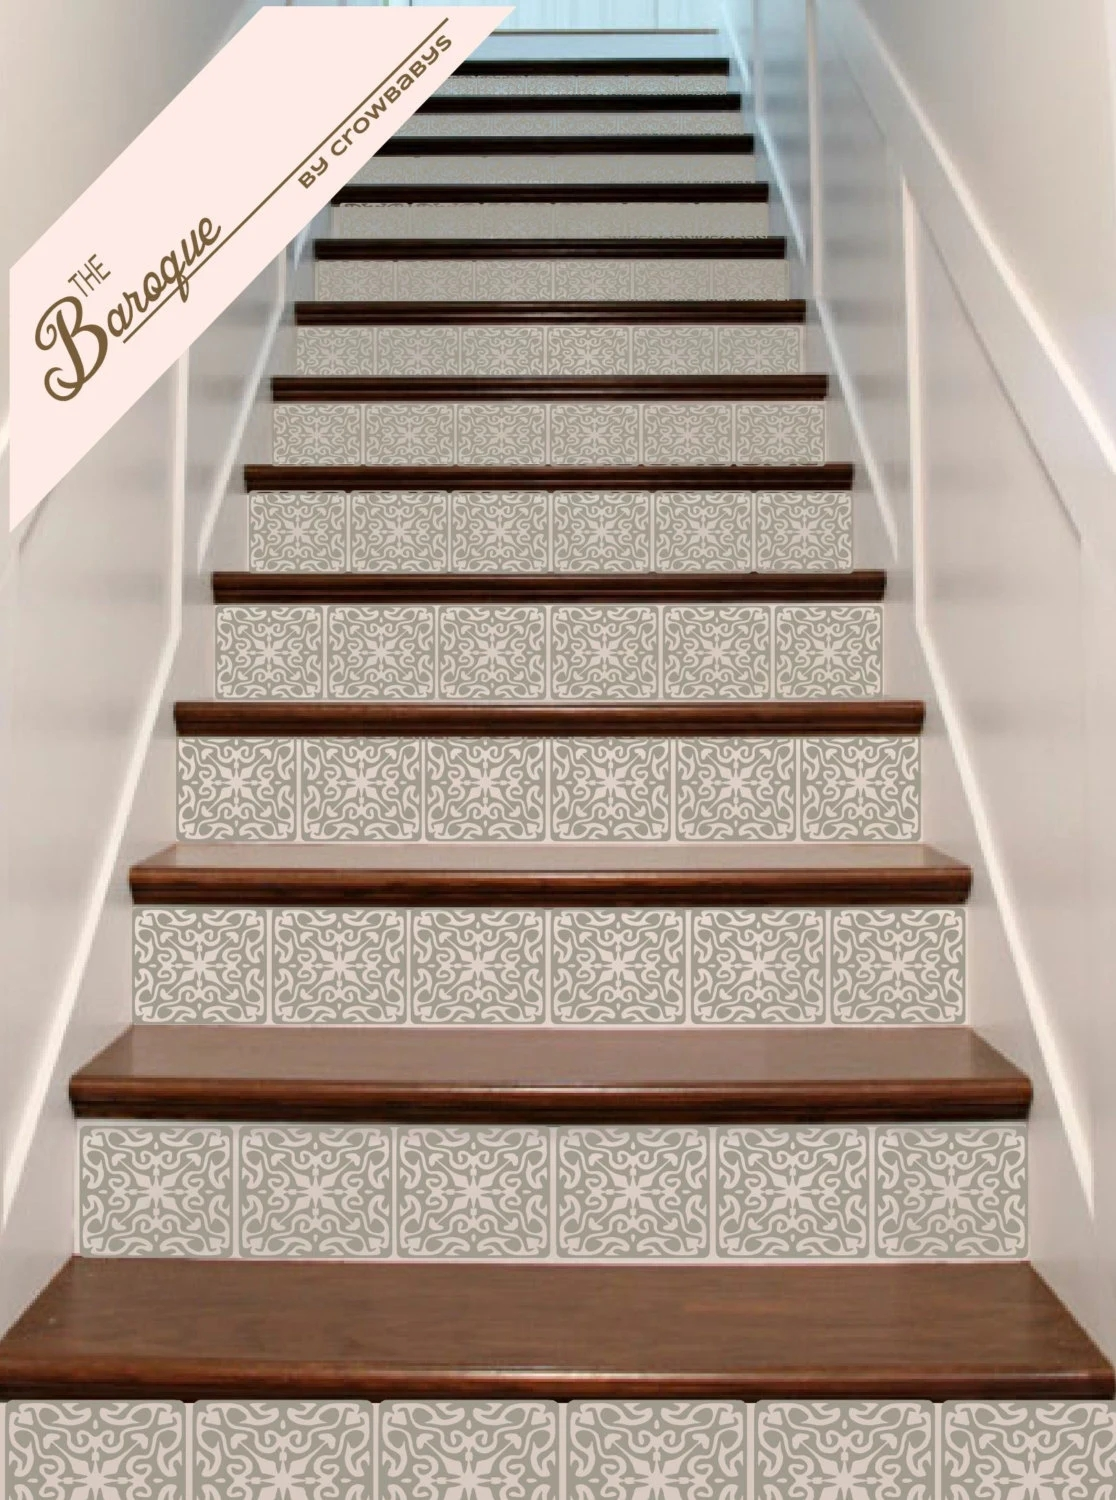 Stair Stickers Ornate Vinyl Tile Decals For Stair Risers   Stair Riser Tiles Designs